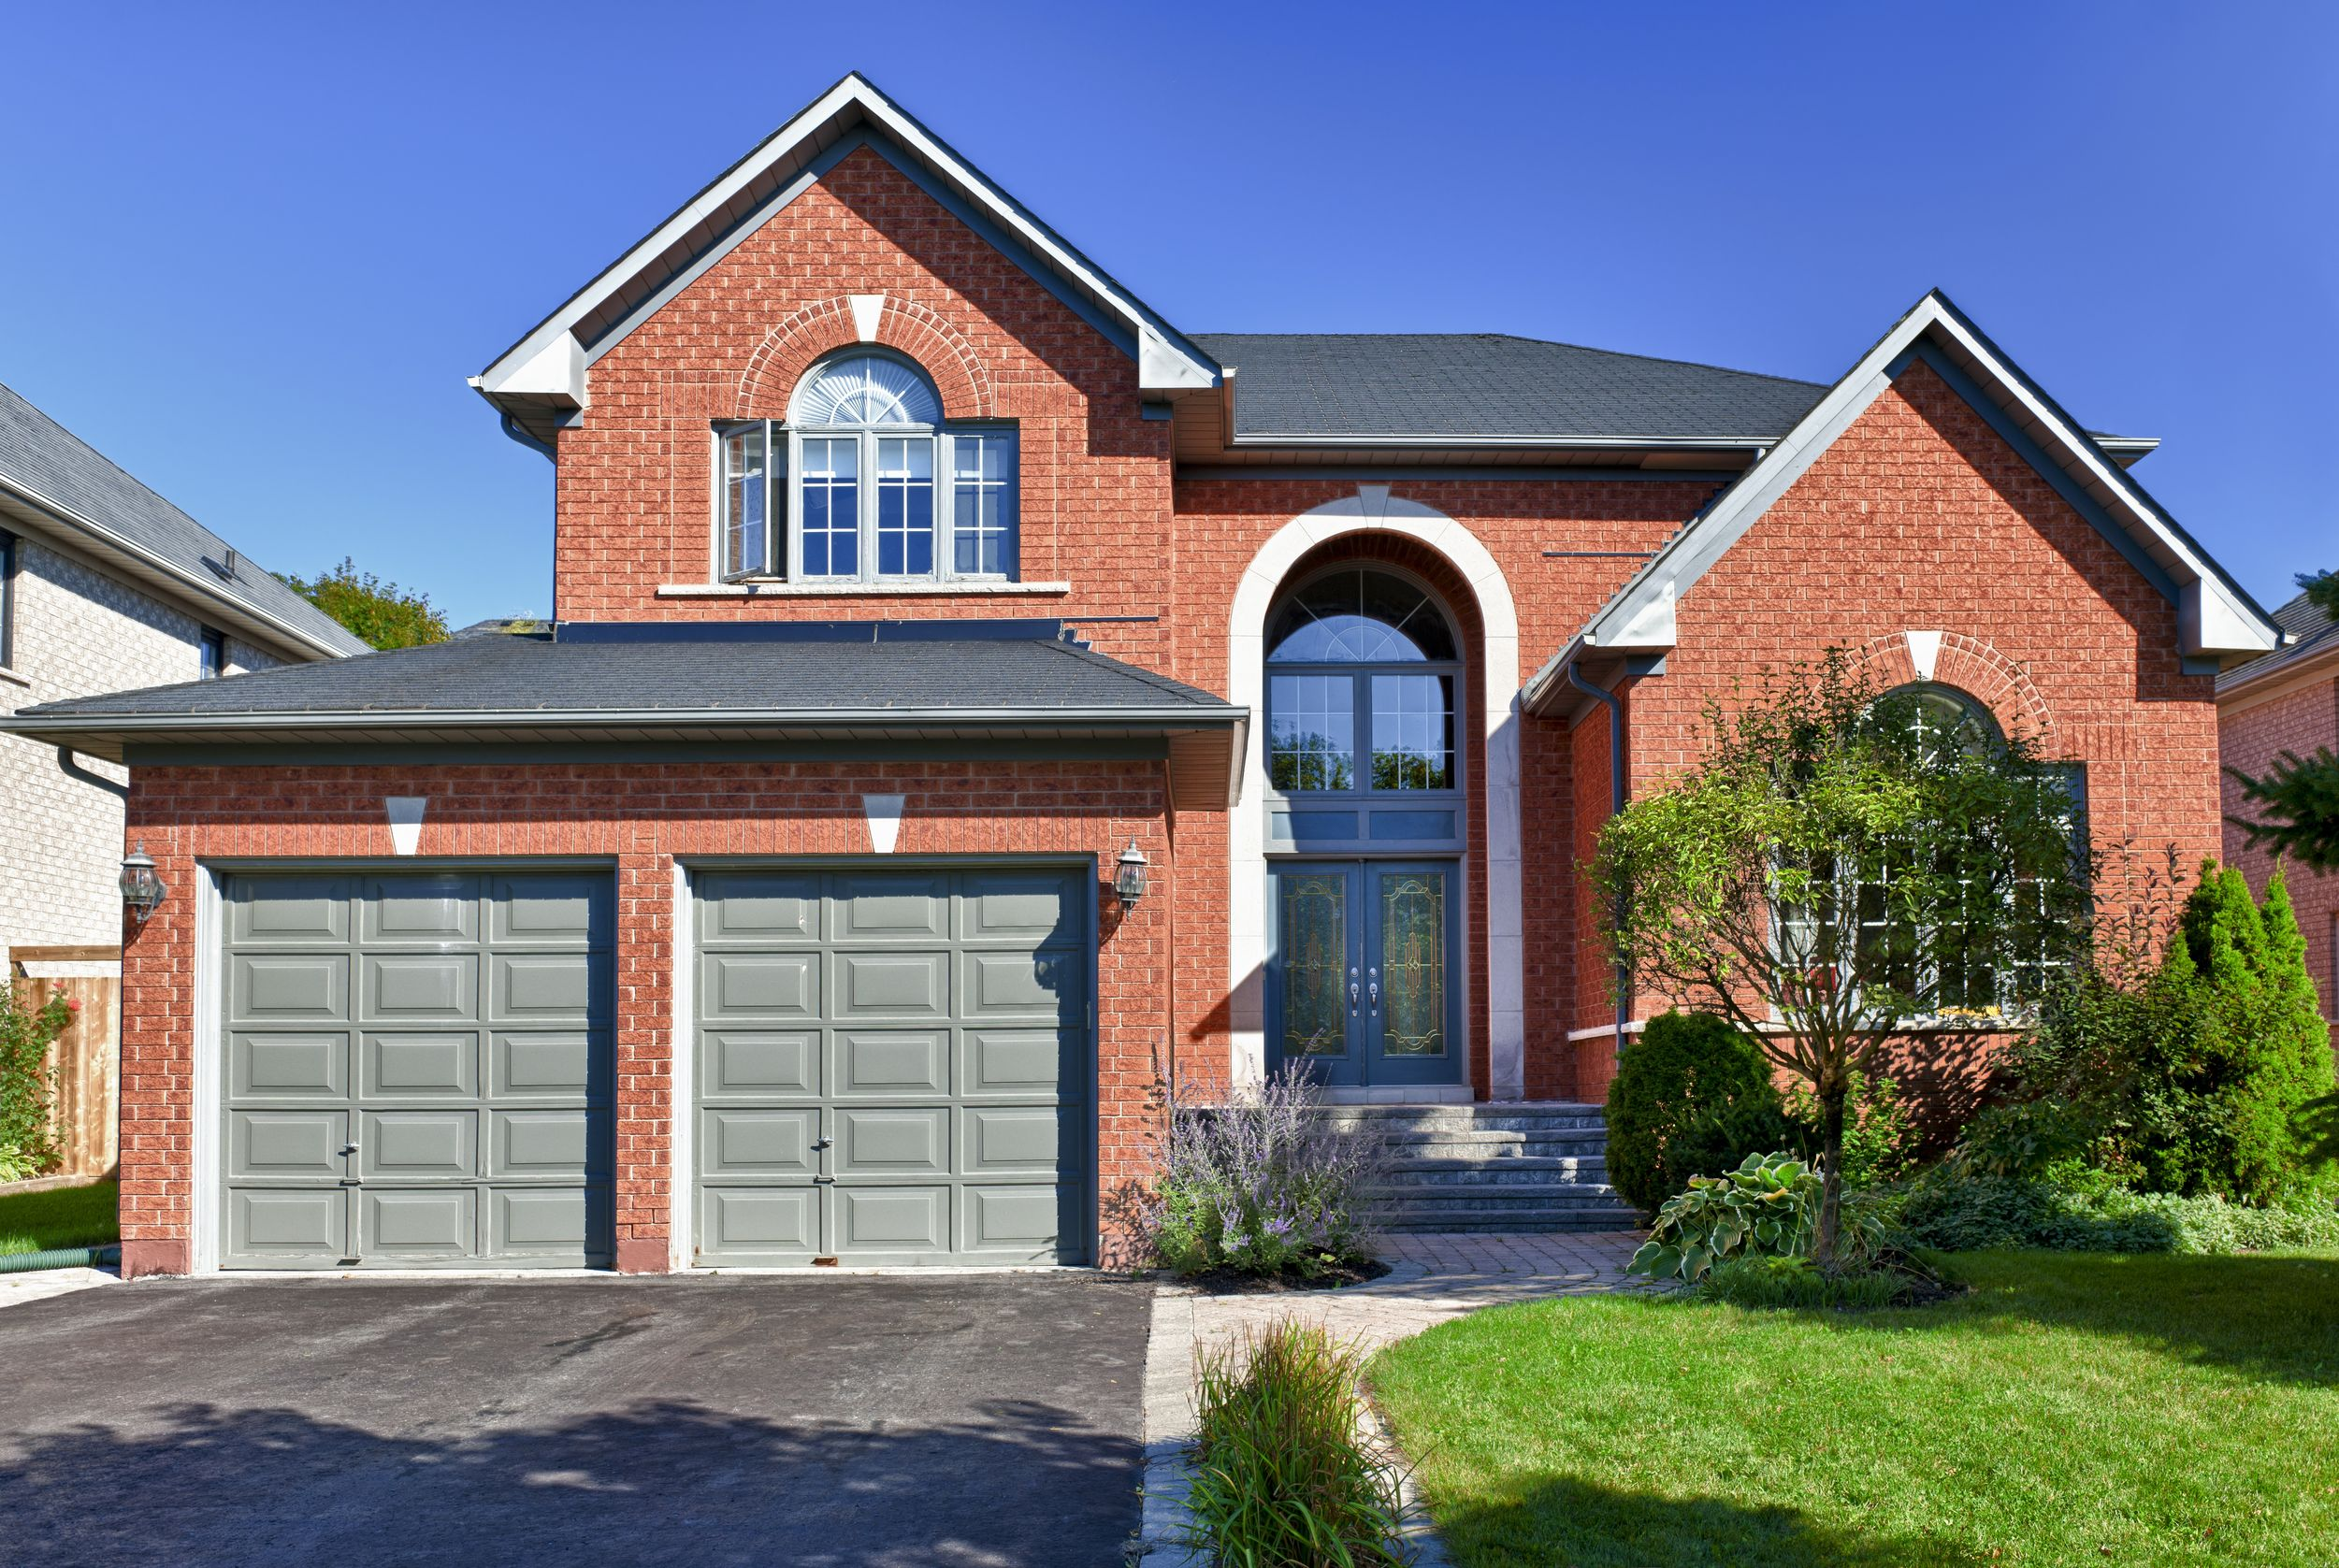 11177365 – brick house in suburbs with two car garage